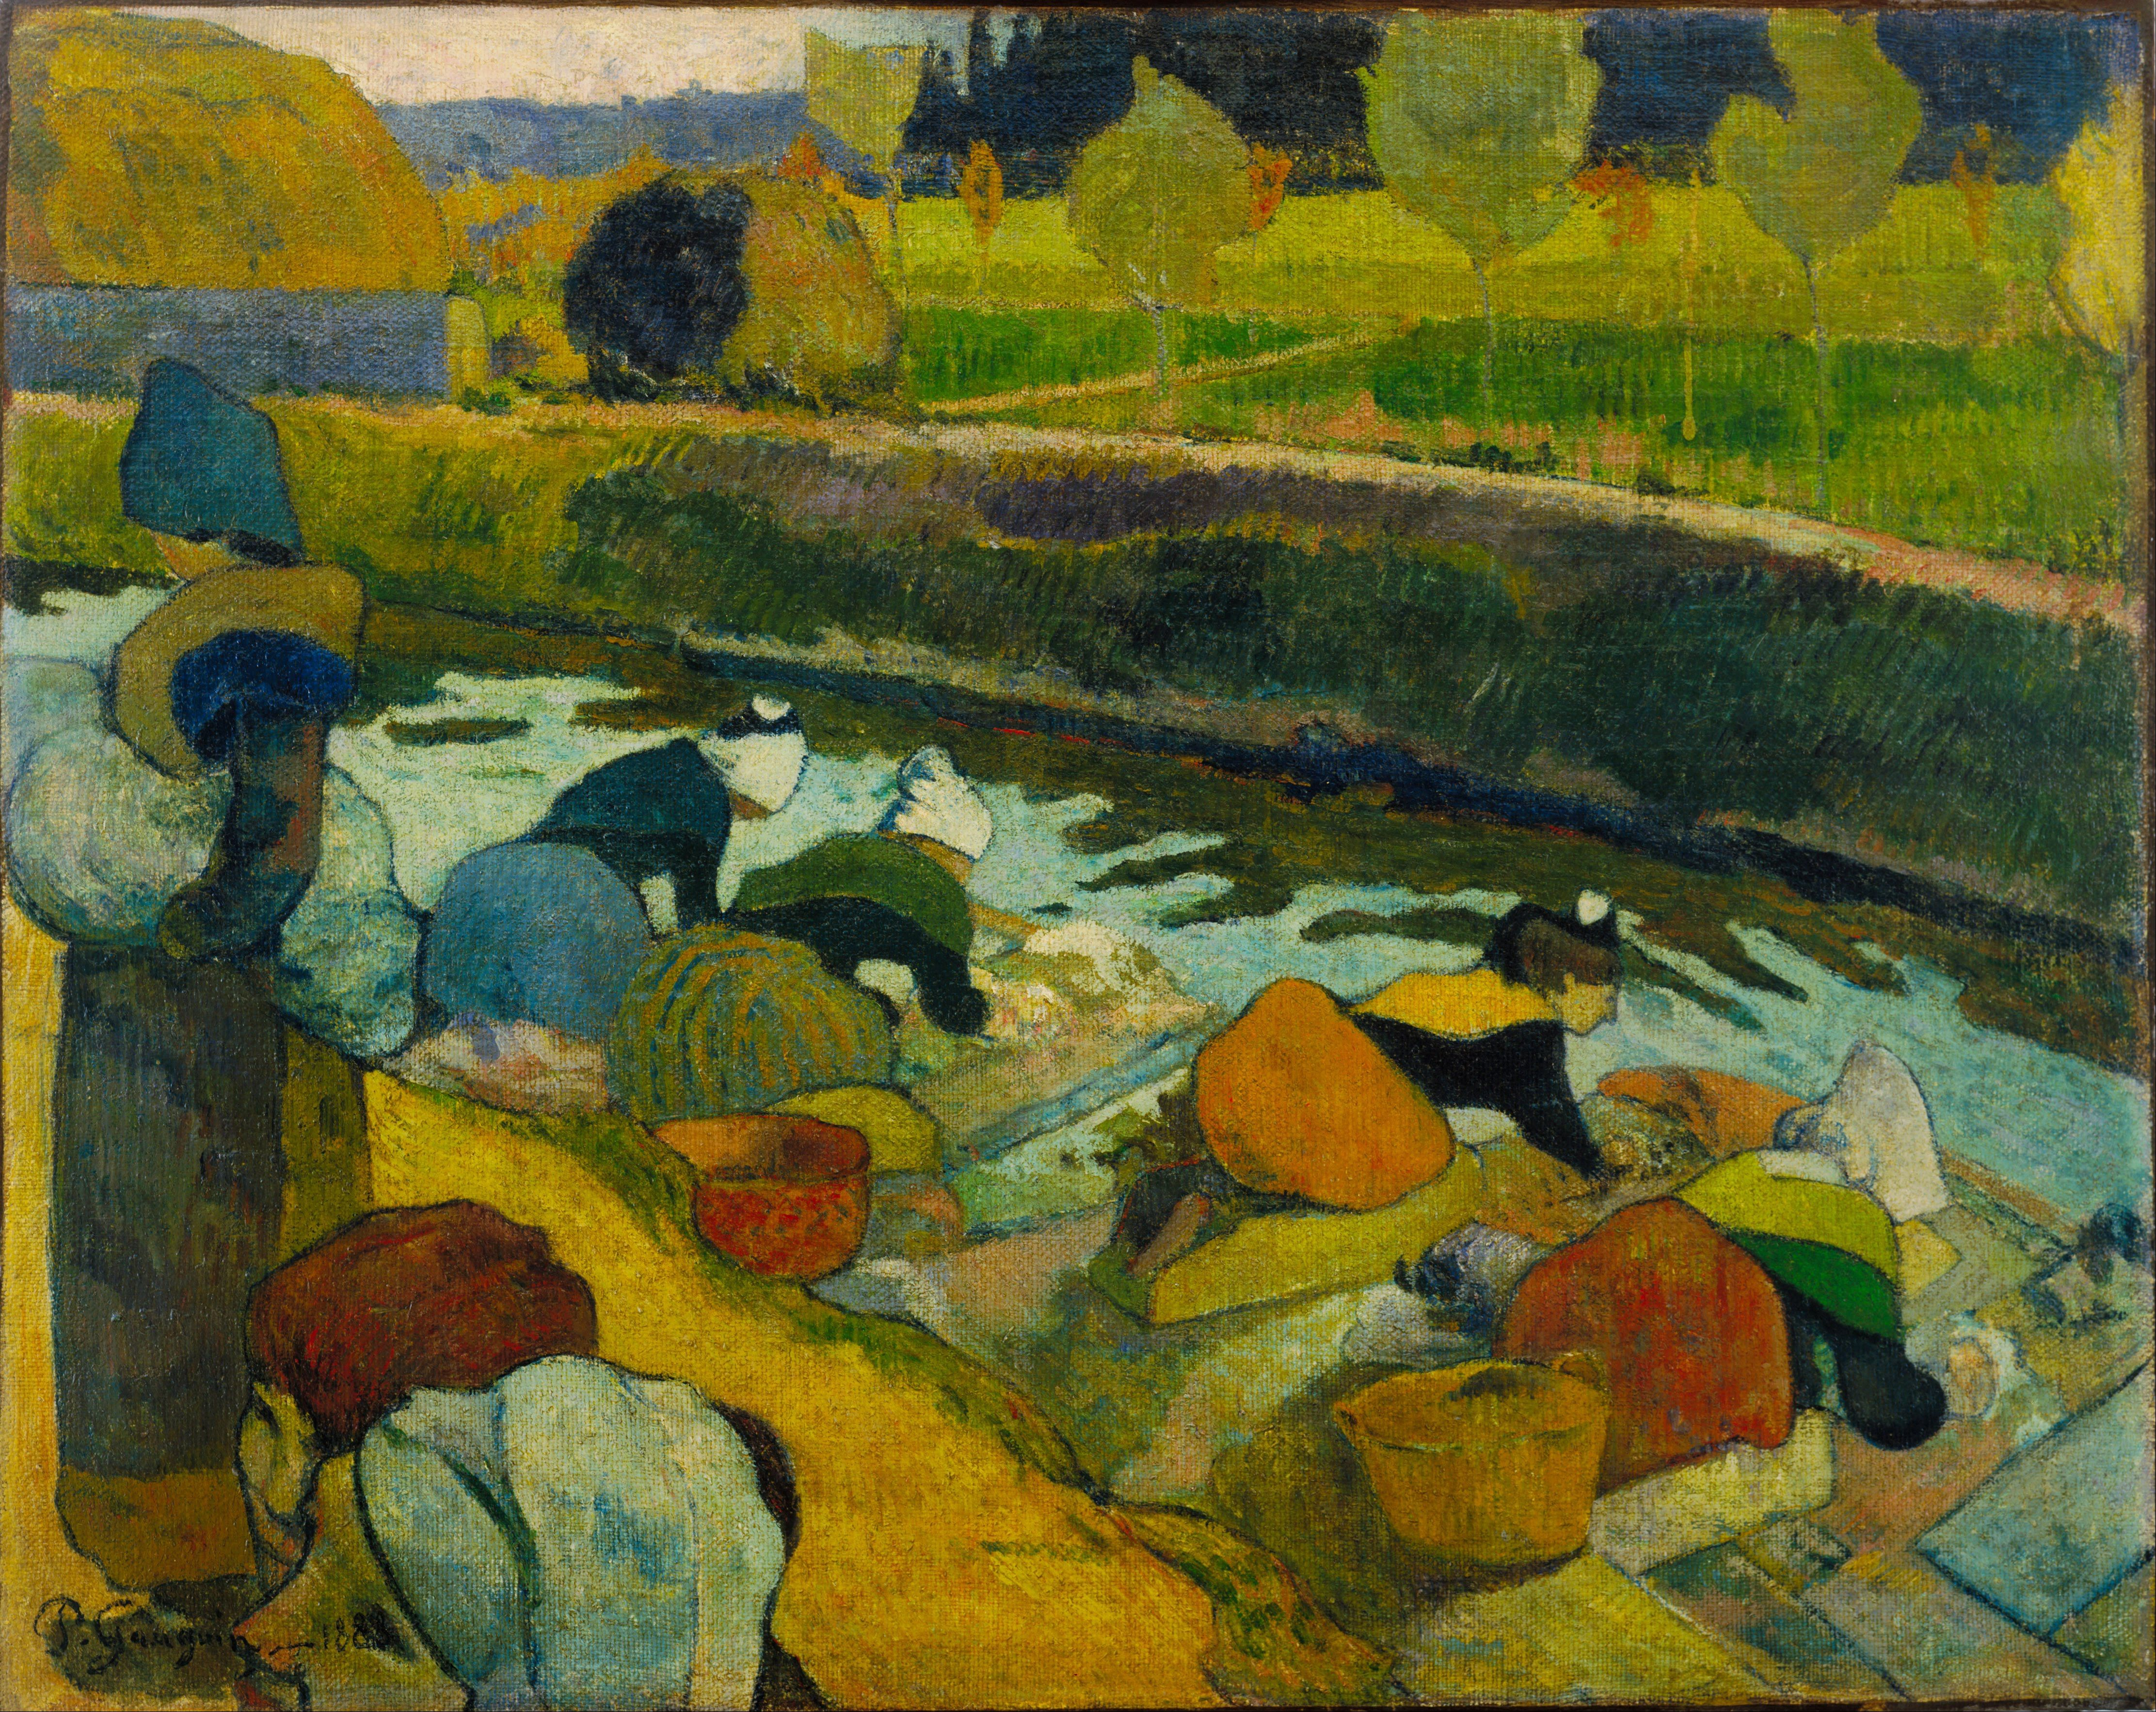 Paul gauguin early works google search art class for Abstract impressionism definition